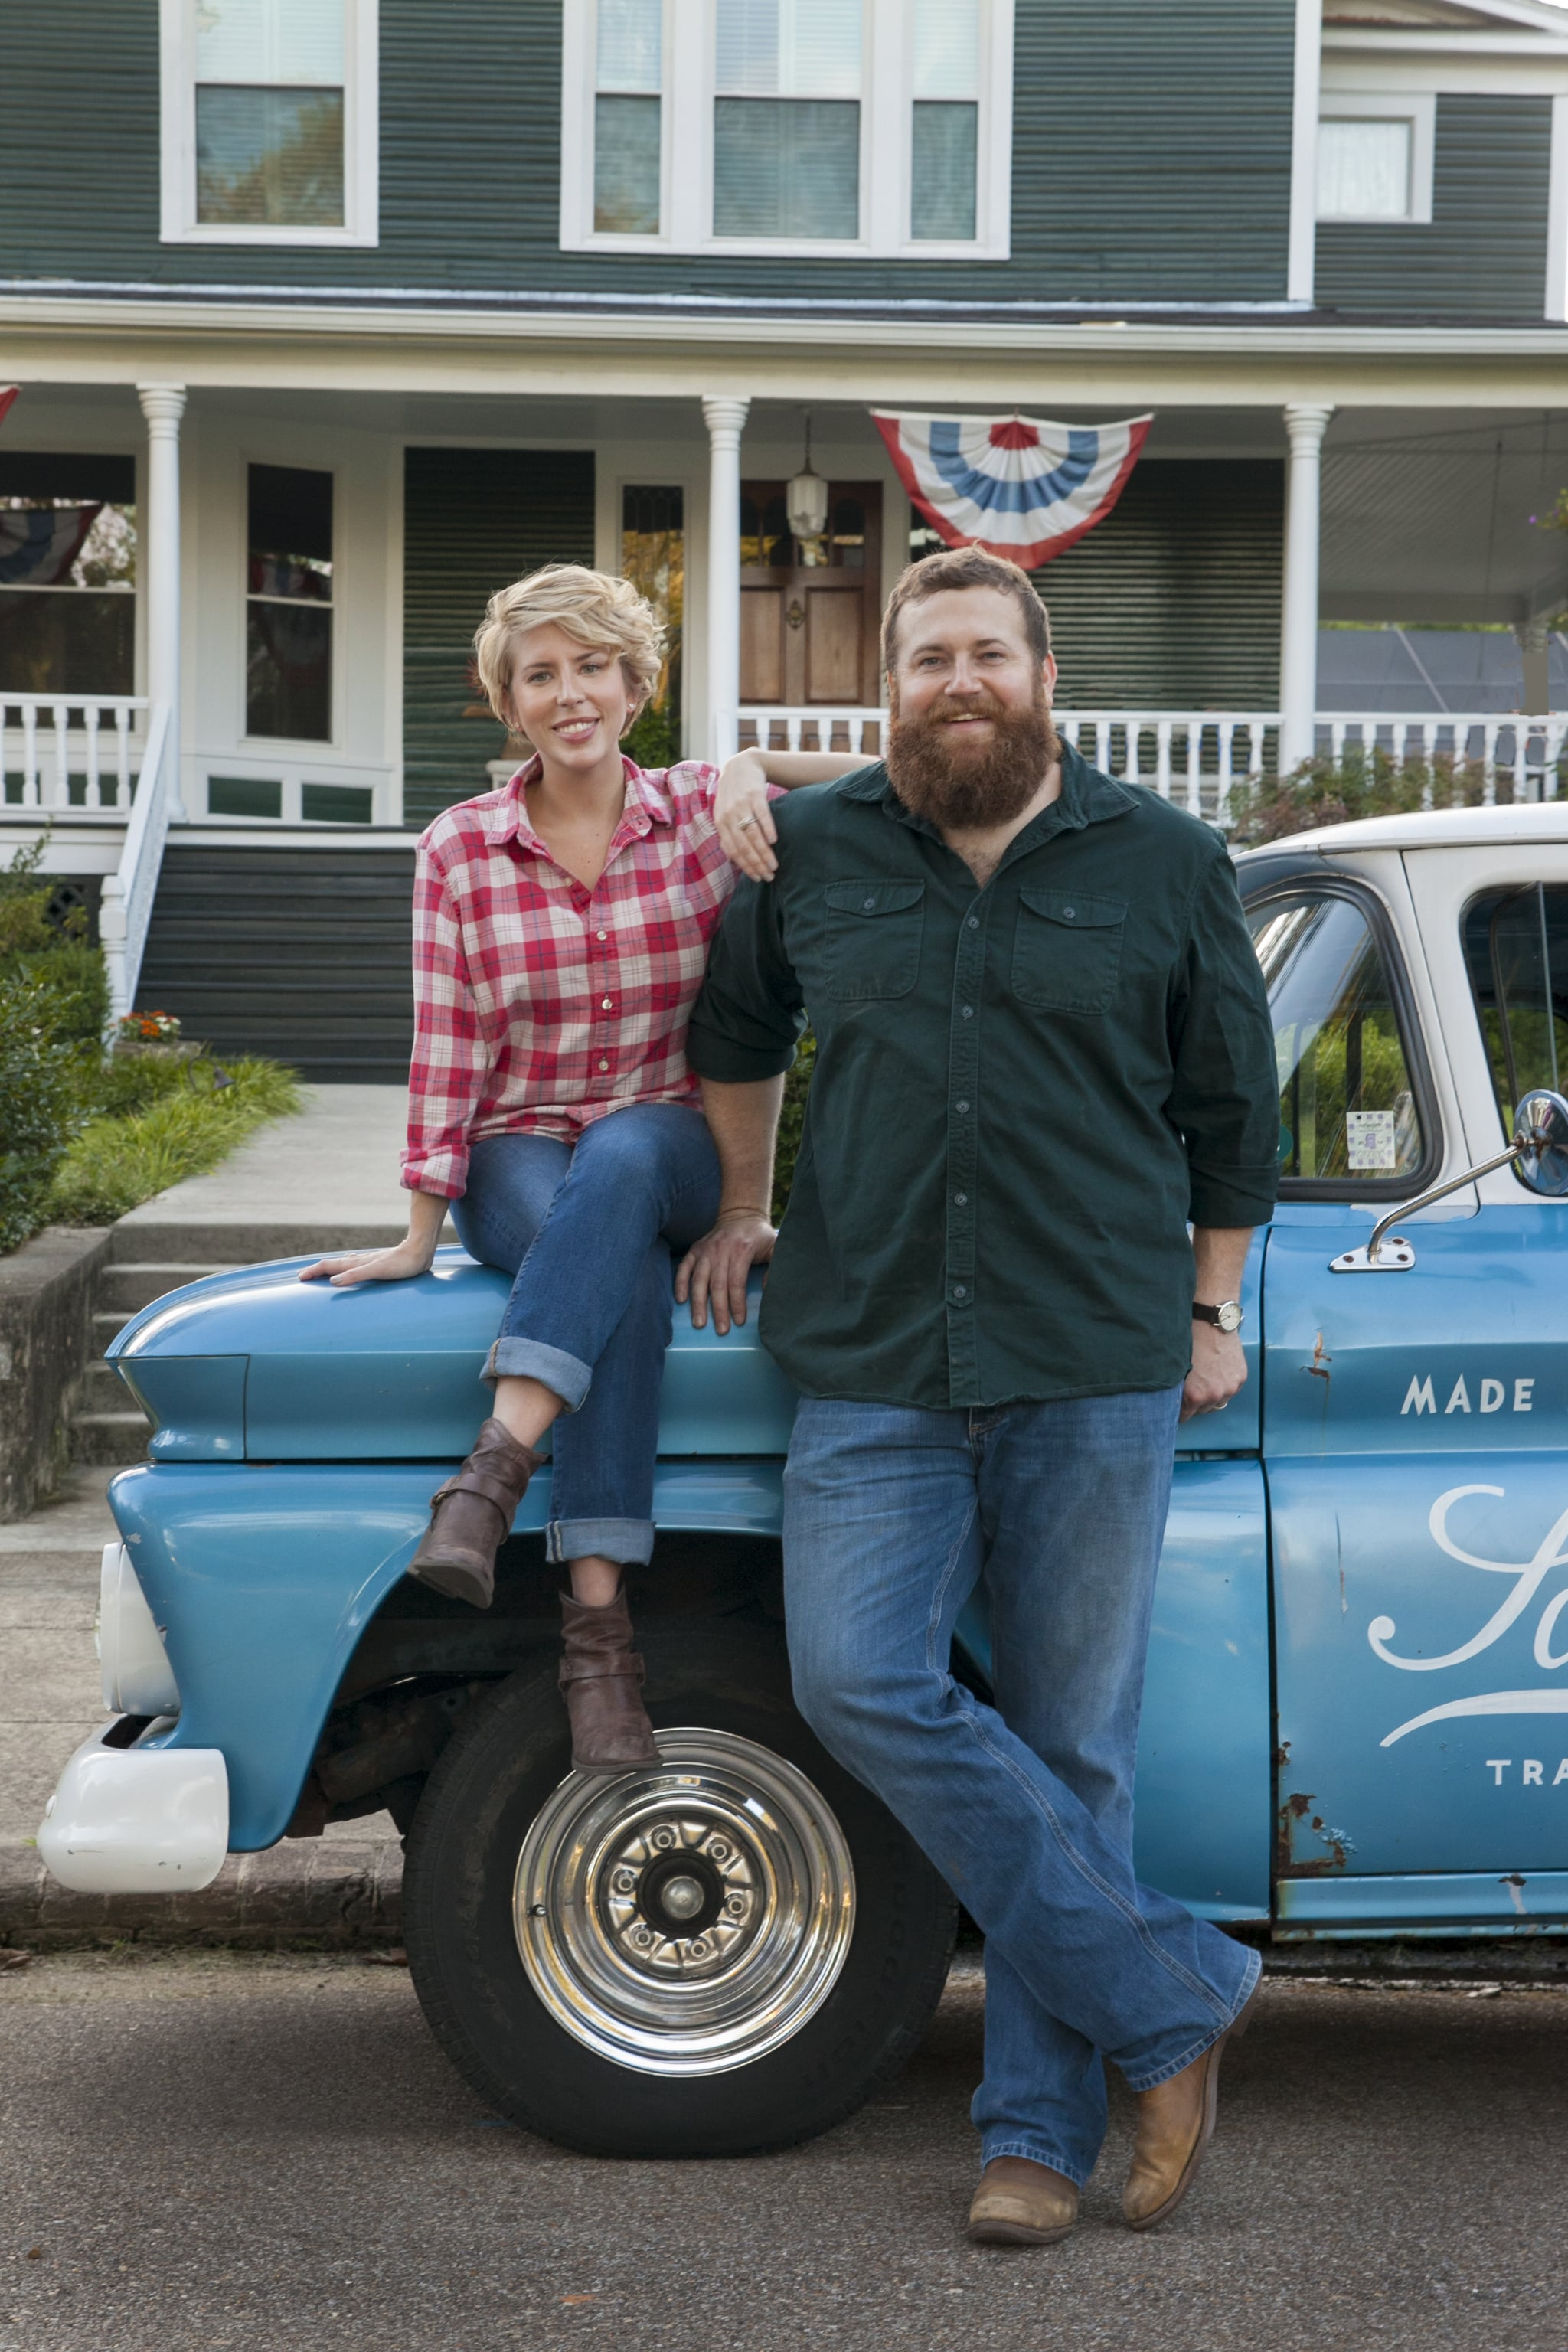 where is hgtv 39 s home town filmed popsugar home